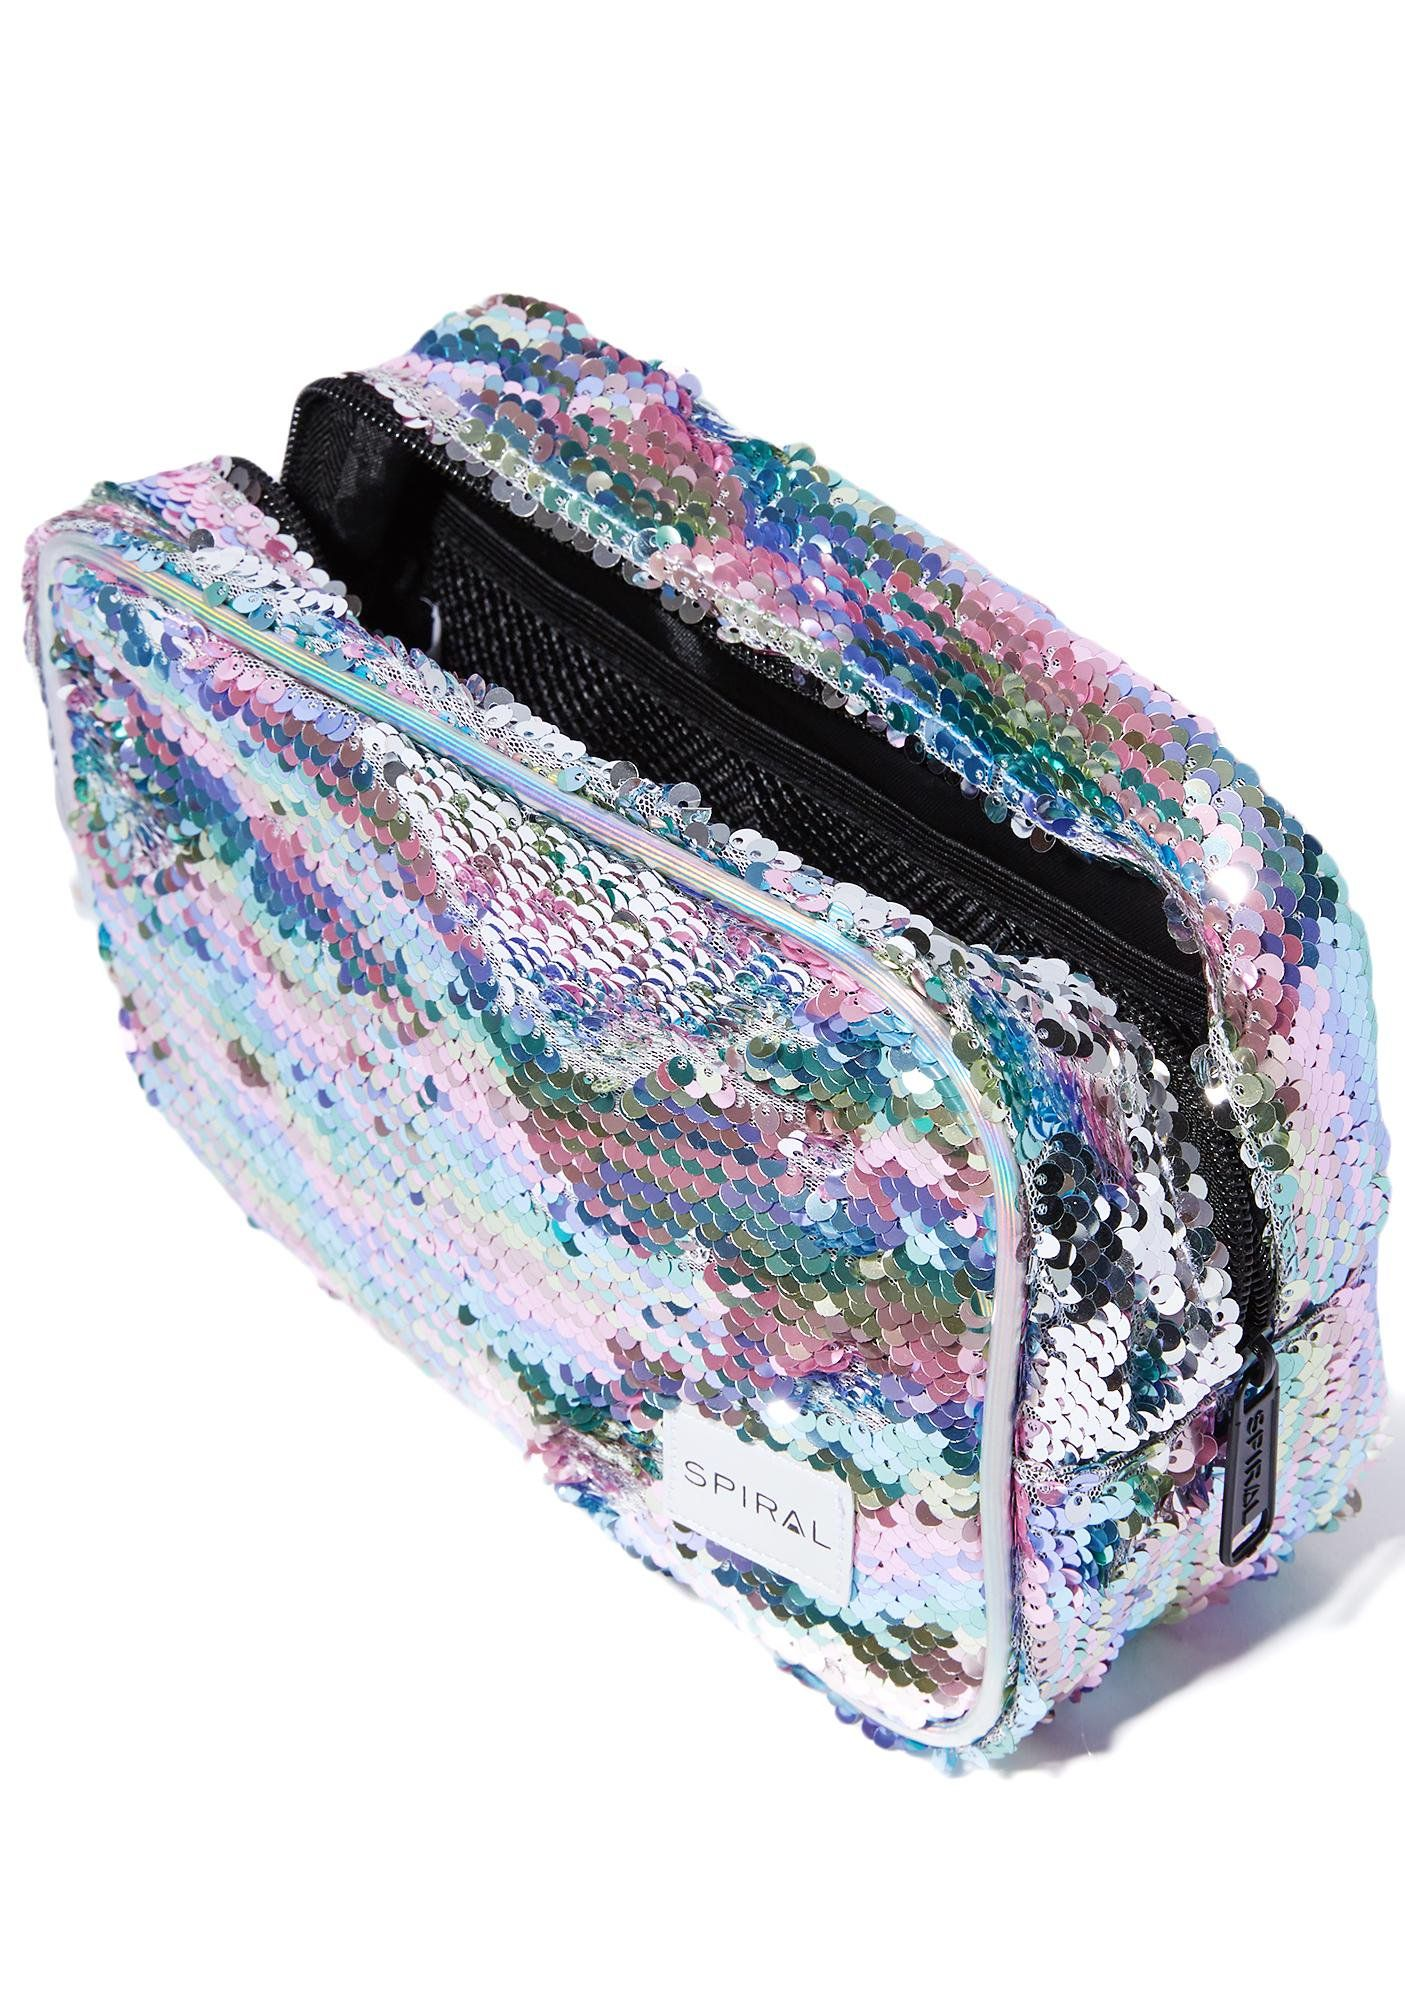 8fd65c1a336f Spiral UK Rainbow Sequins Portland Cosmetic Bag cuz sparkly rainbow equals  happiness